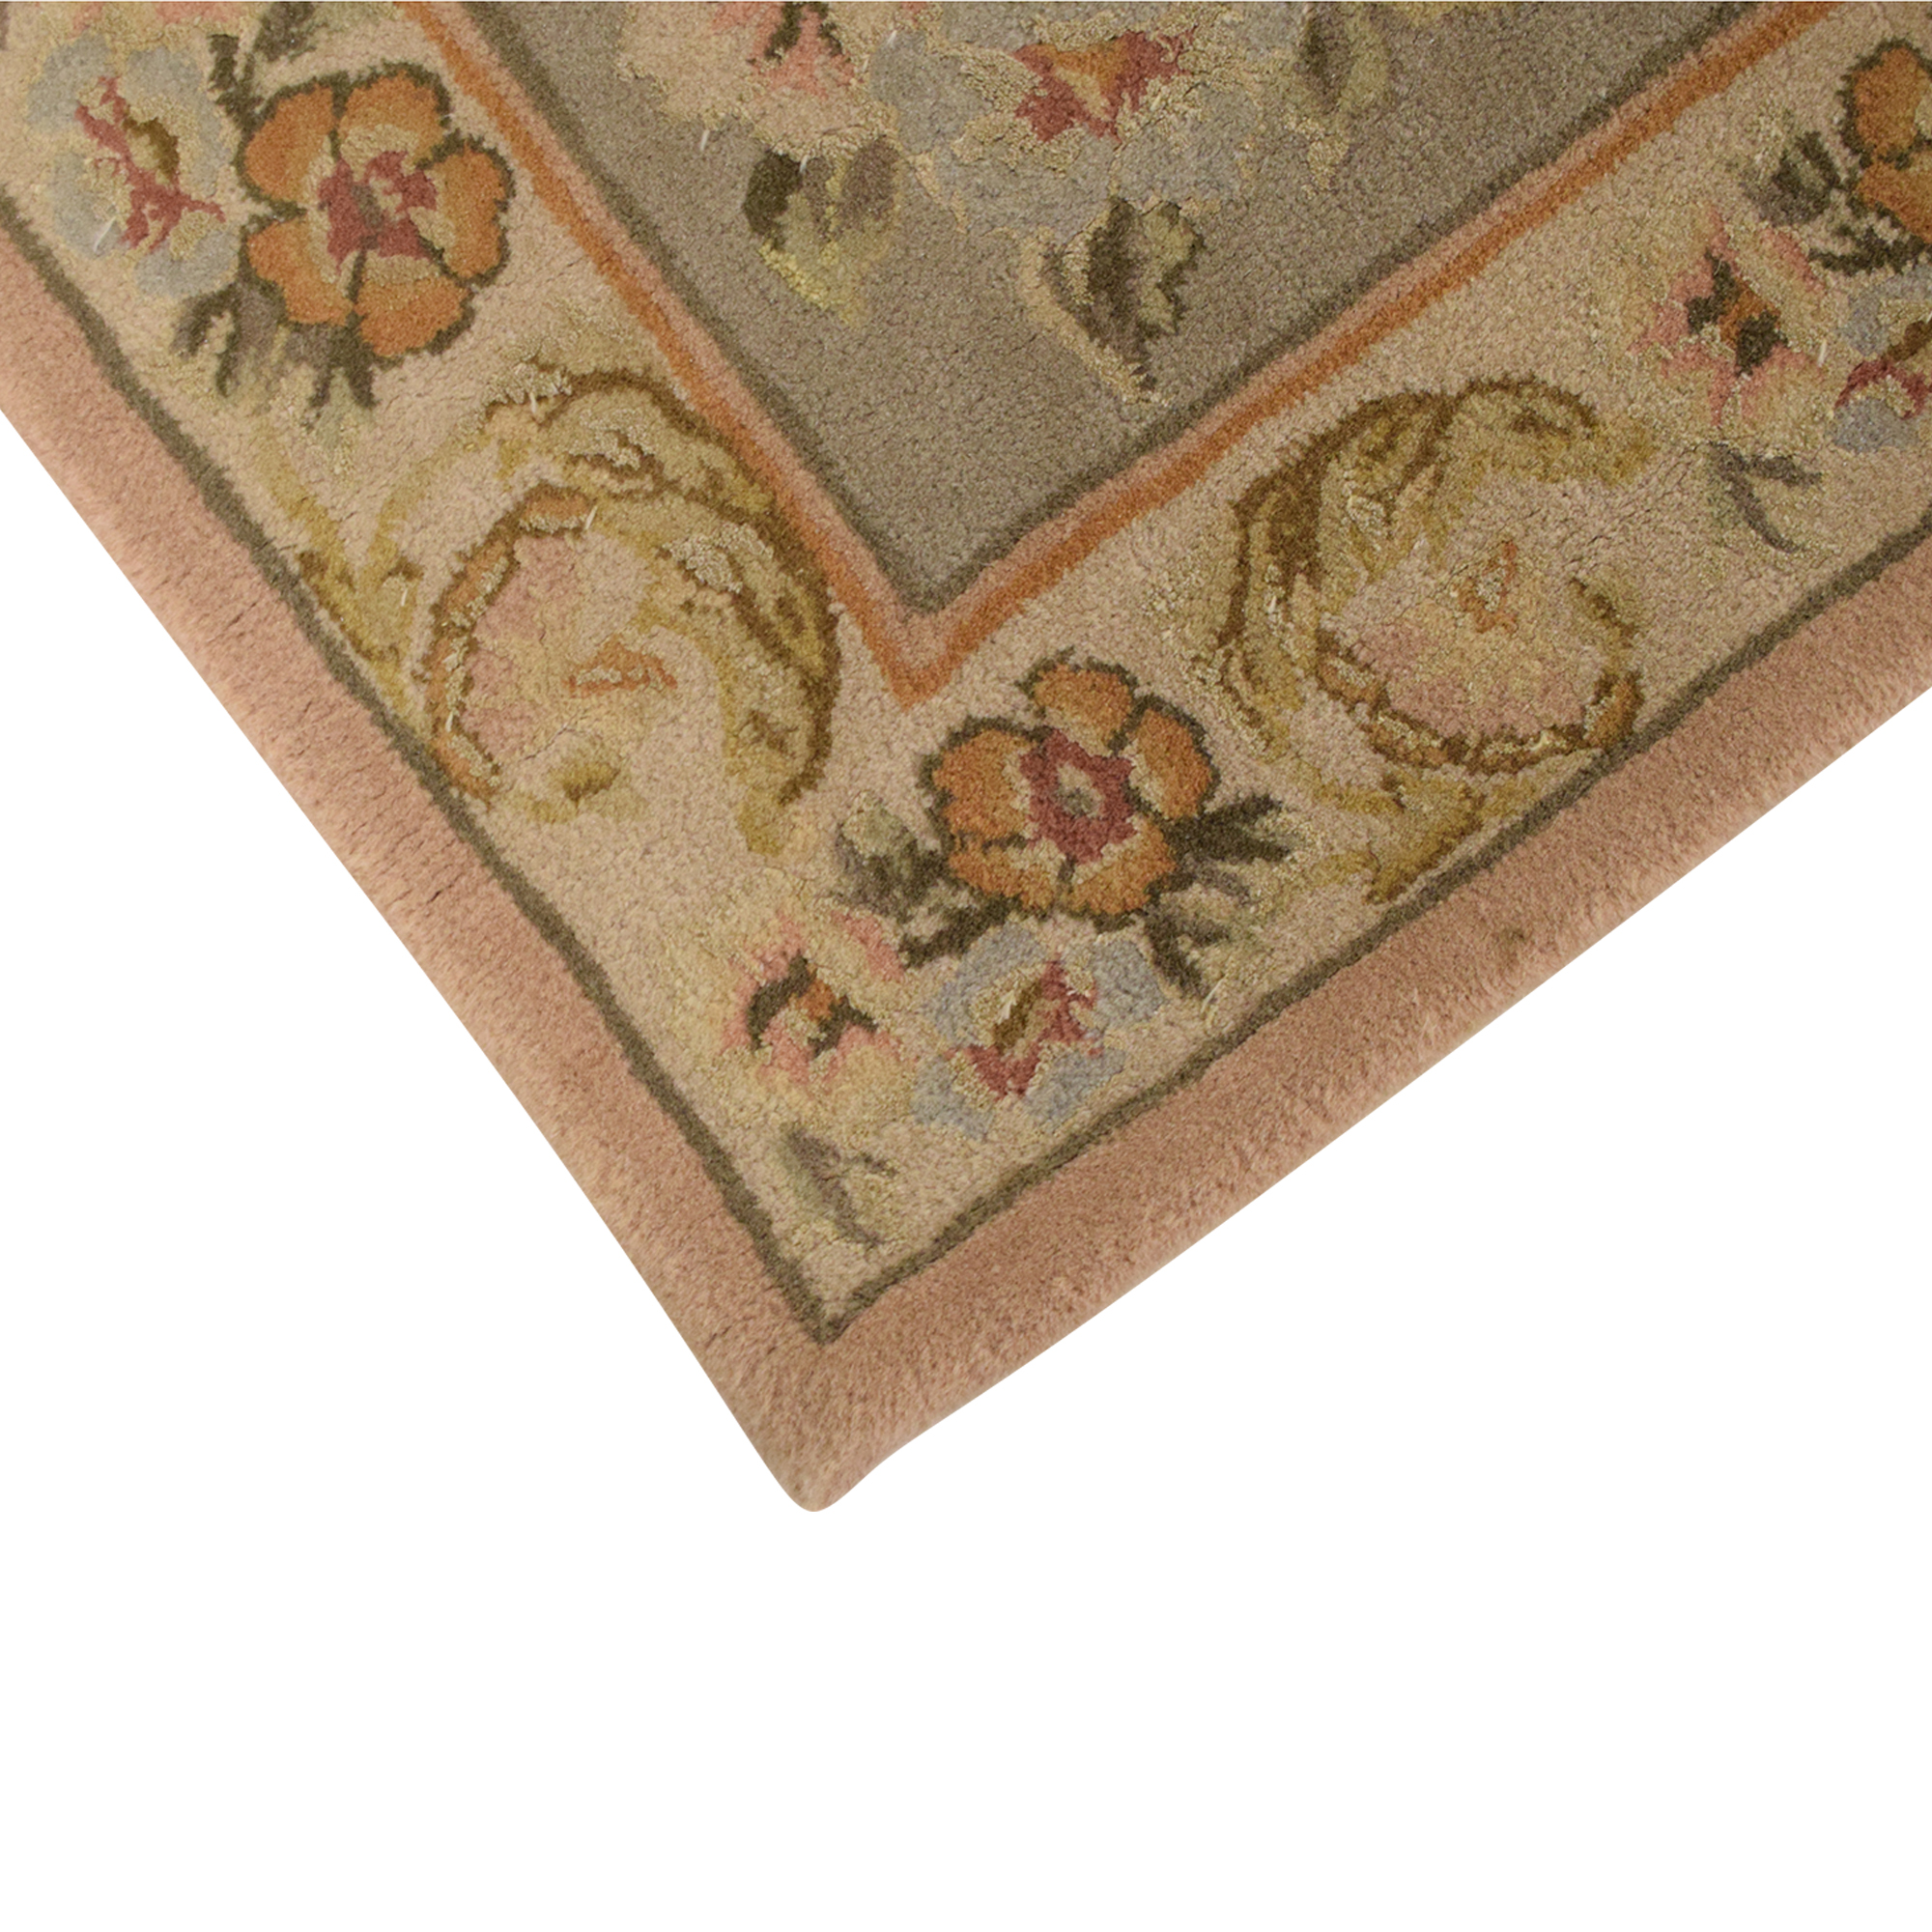 Capel Rugs Capel Louvre Area Rug used